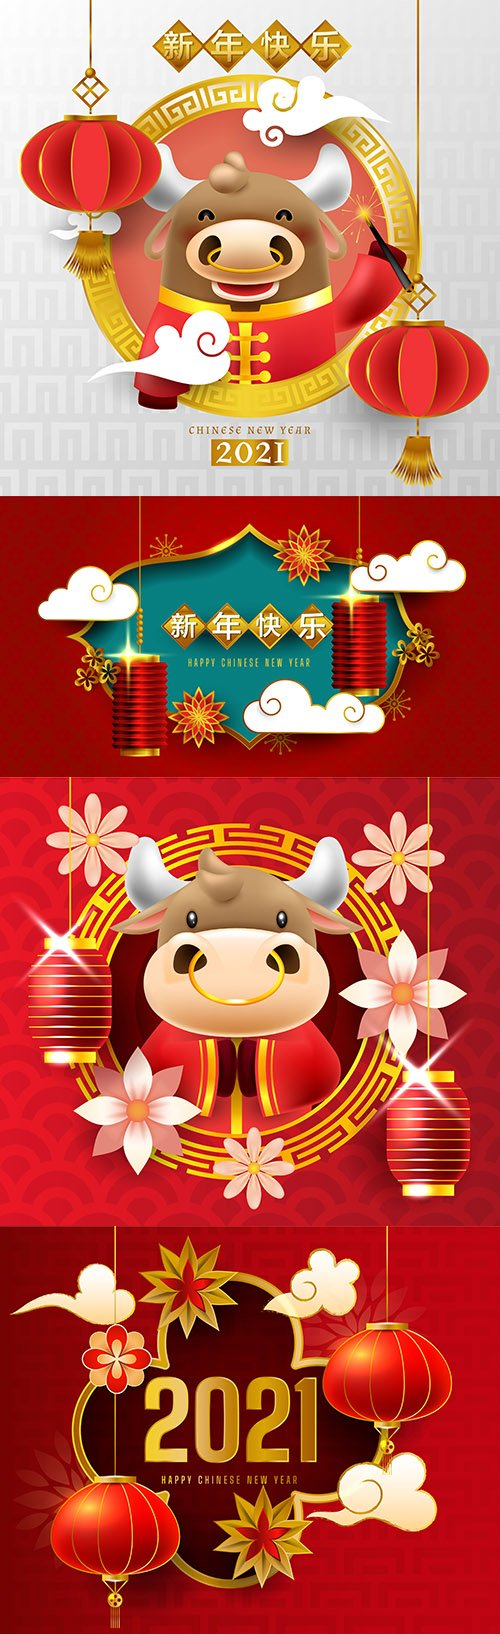 Happy Chinese New Year 2021 traditional greeting card design